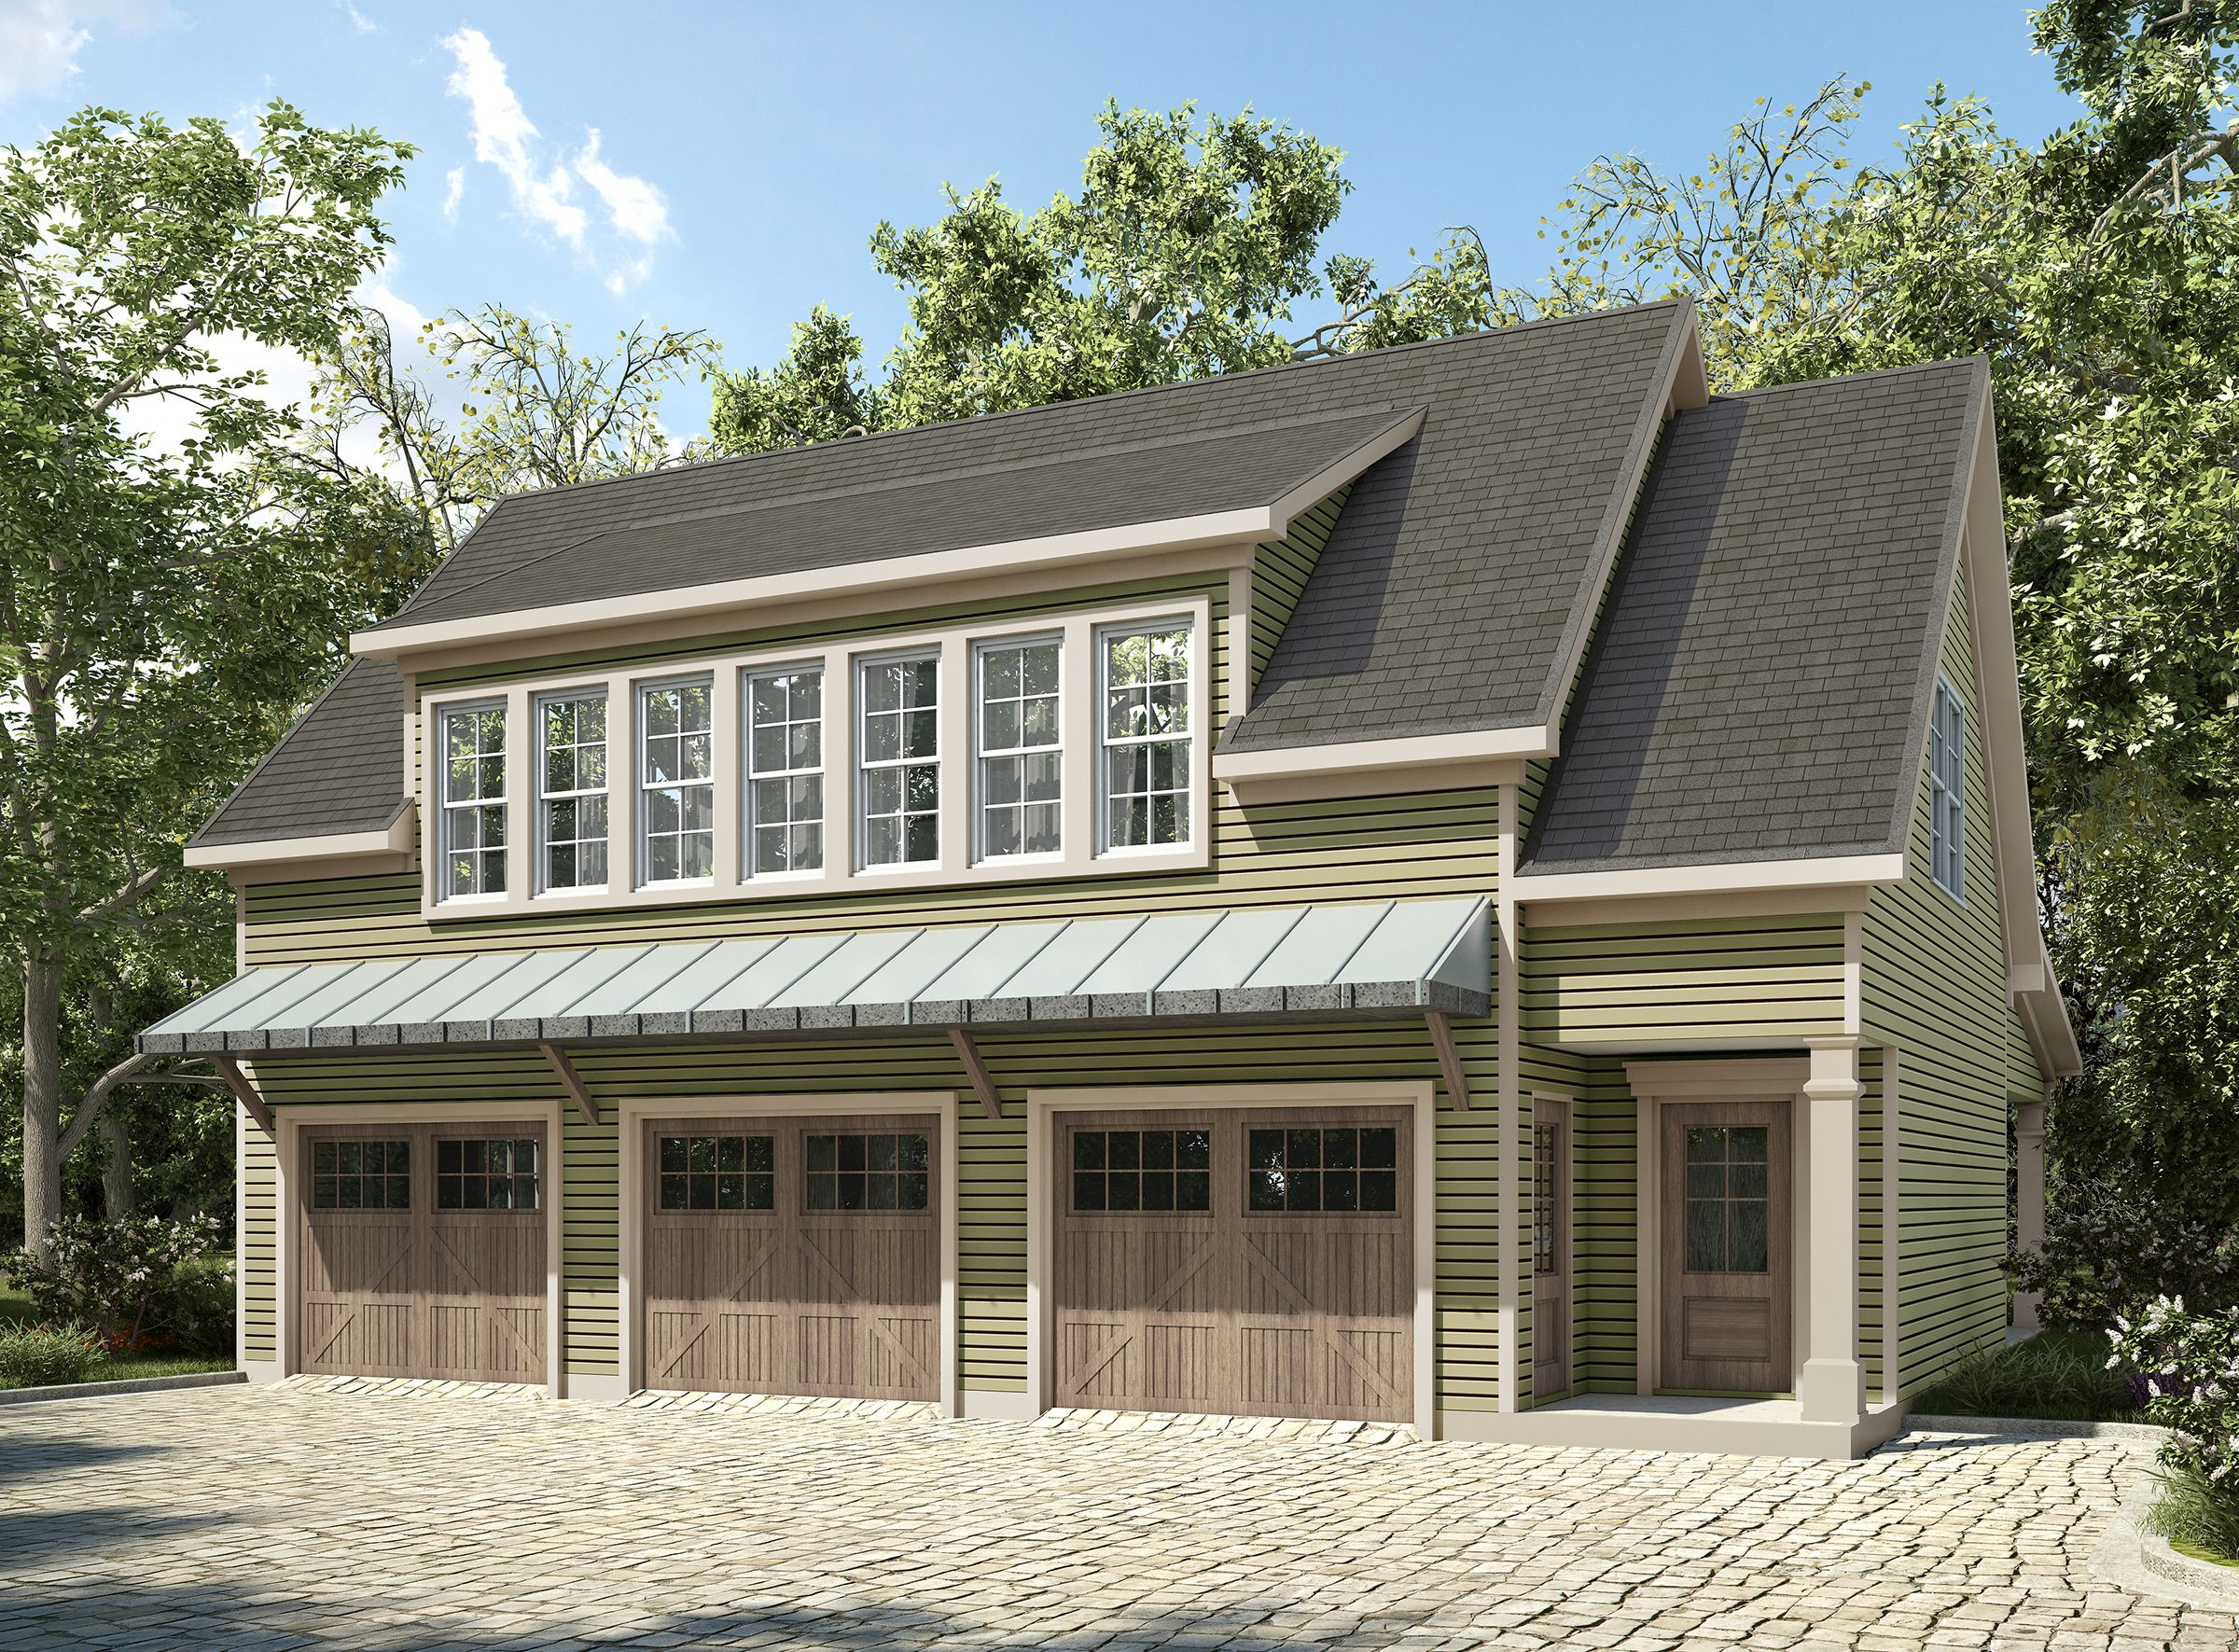 Plan 36057dk 3 bay carriage house plan with shed roof in for 3 car garage plans